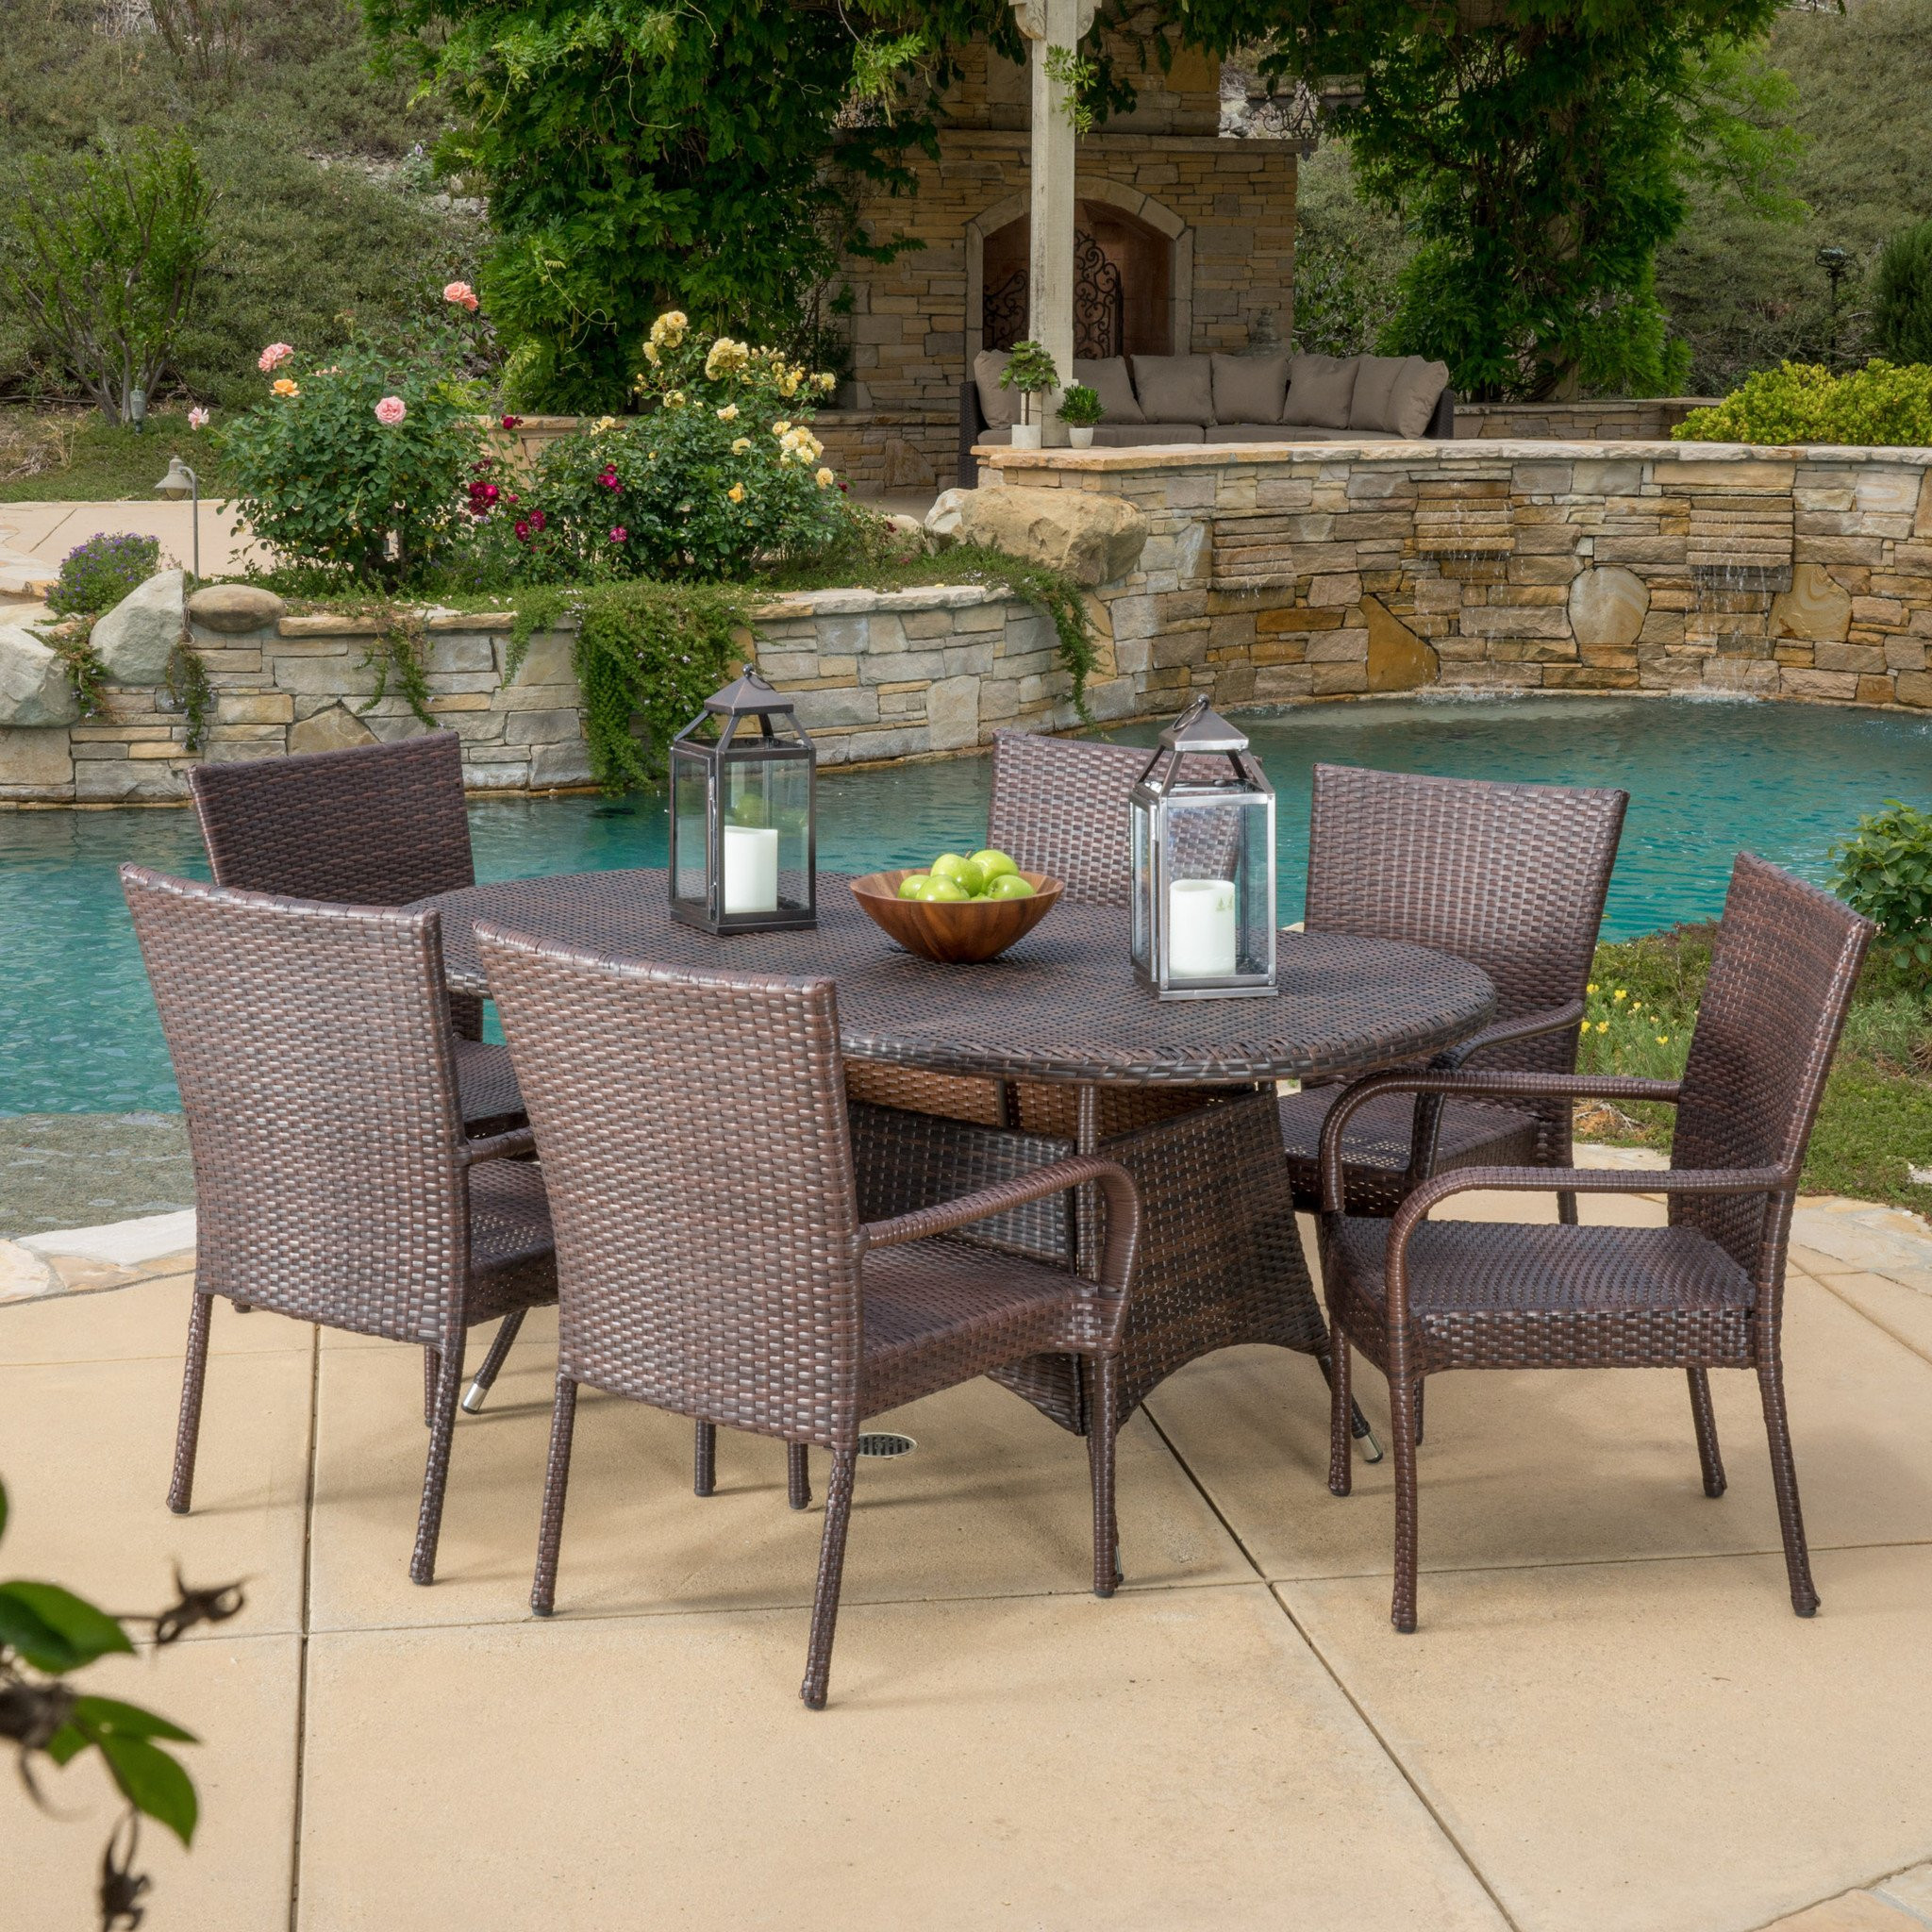 Kory Outdoor 7pc Multibrown Wicker Round Dining Se...